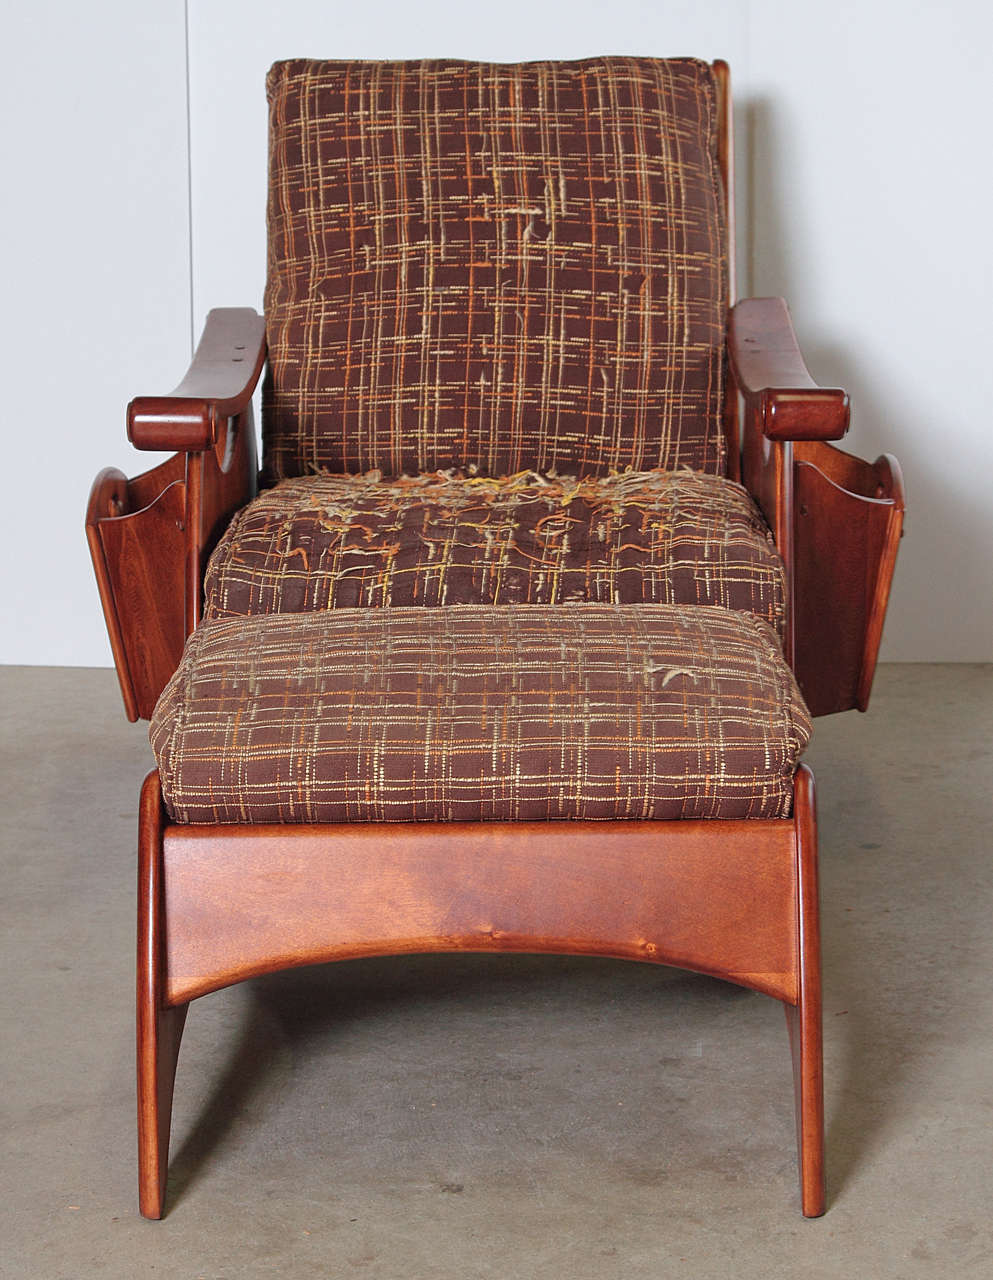 Gilbert Rohde Art Deco Heywood Wakefield Seating with Original Fabric, Reduced For Sale 2